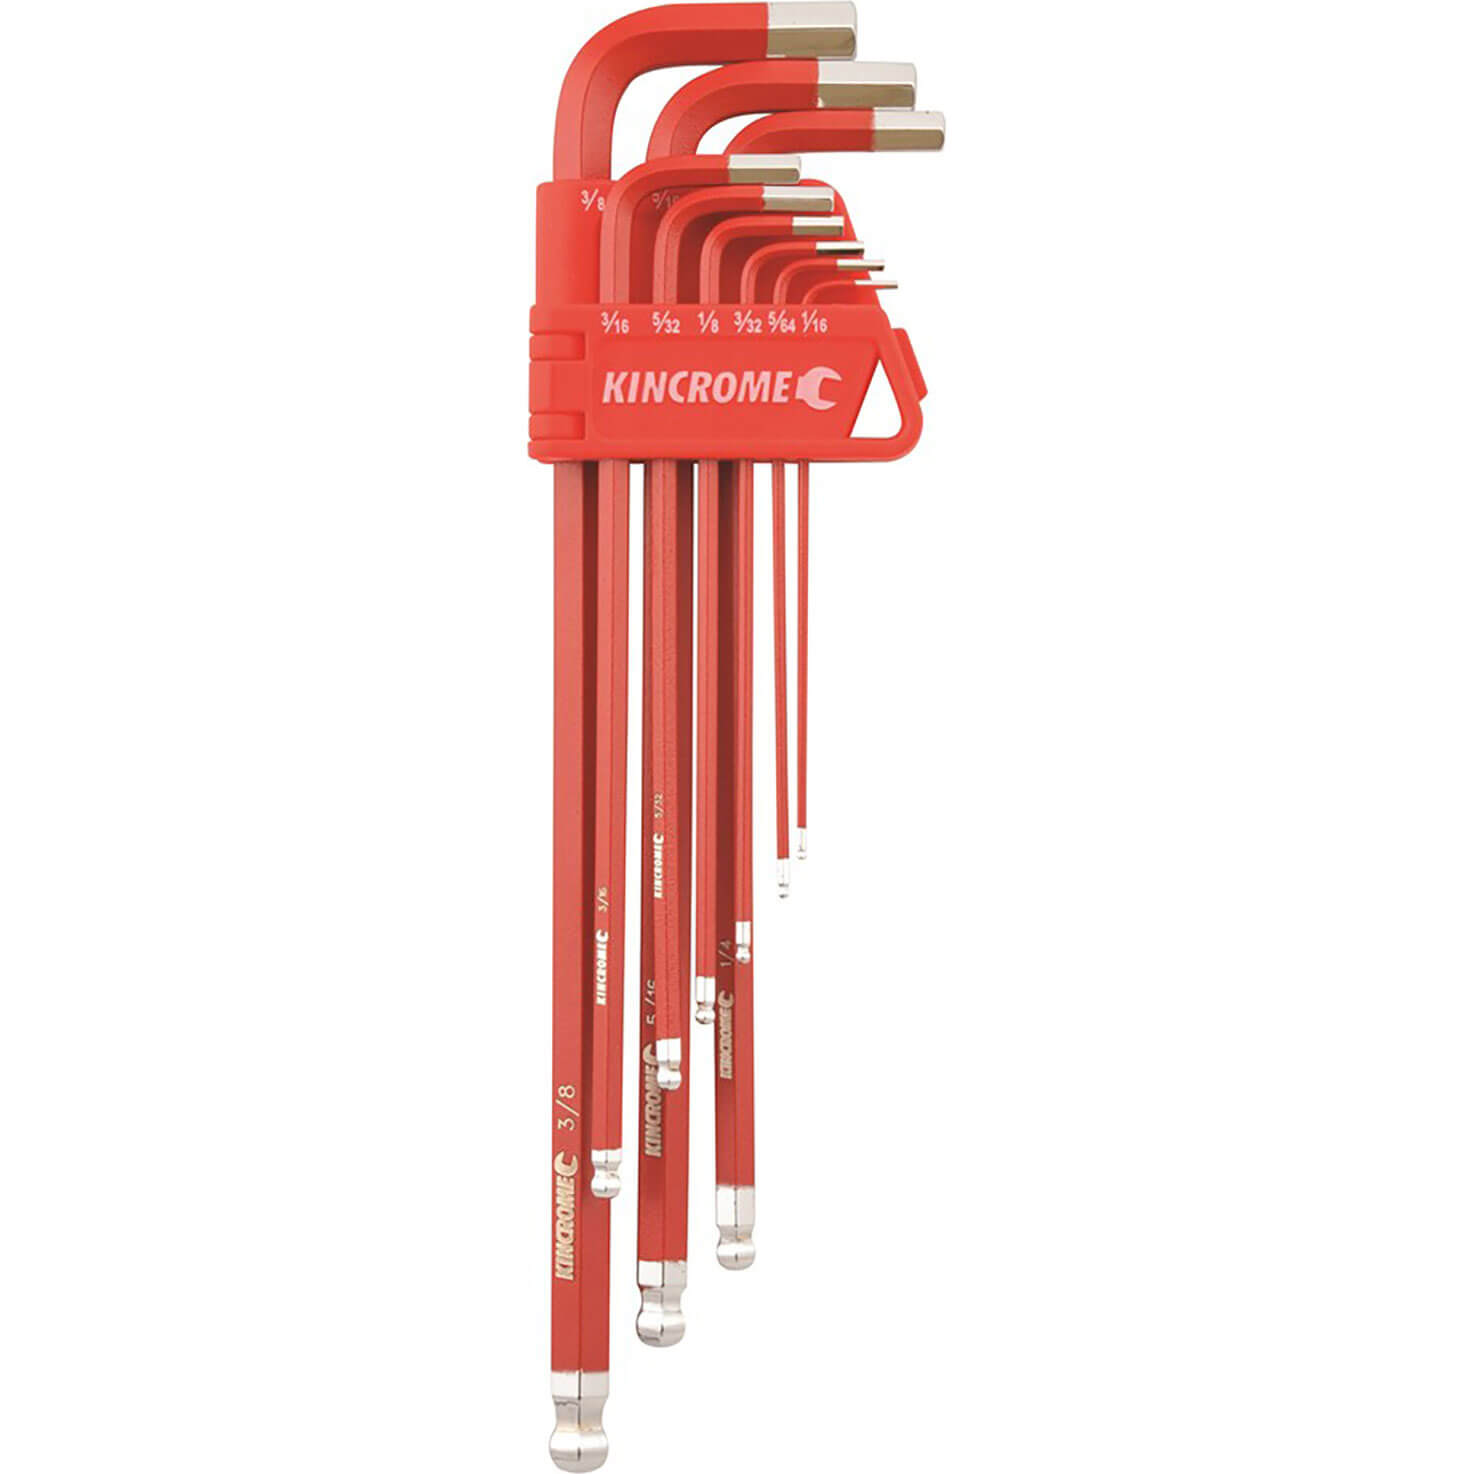 Image of Kincrome 9 Piece Ball End Hex Key Set Long Series Imperial